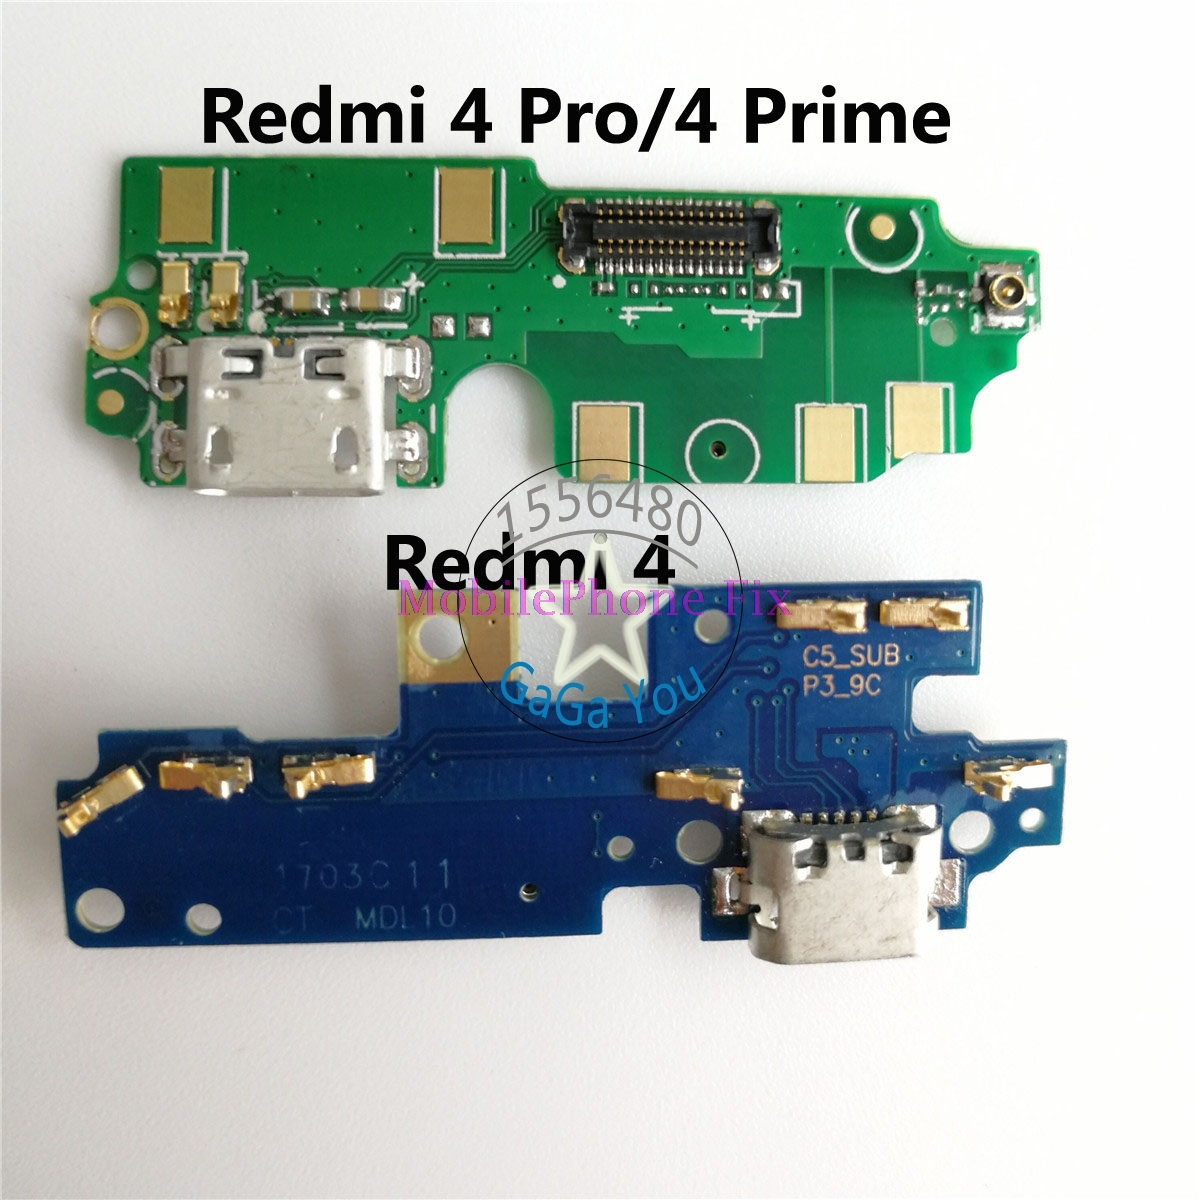 For Xiaomi <font><b>Redmi</b></font> <font><b>4</b></font>/ <font><b>Redmi</b></font> <font><b>4</b></font> <font><b>Pro</b></font> Prime Micro Dock Connector Board <font><b>USB</b></font> Charging Port Flex Cable with Mircrophone Modules Parts image